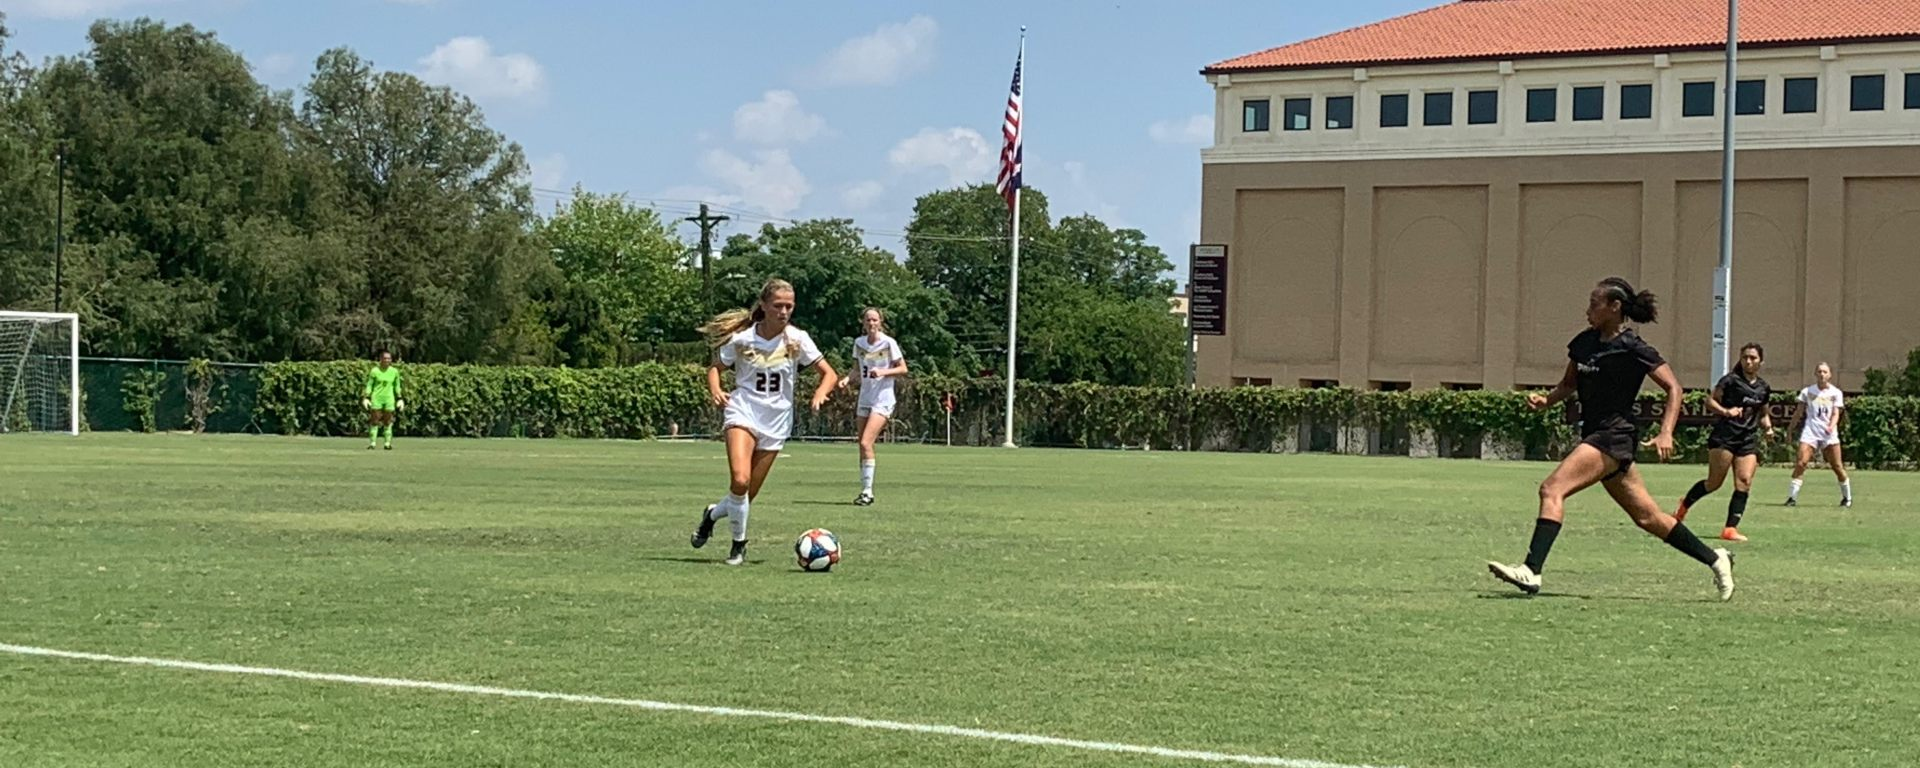 Blonde Texas State player kicks the soccer ball at midfield